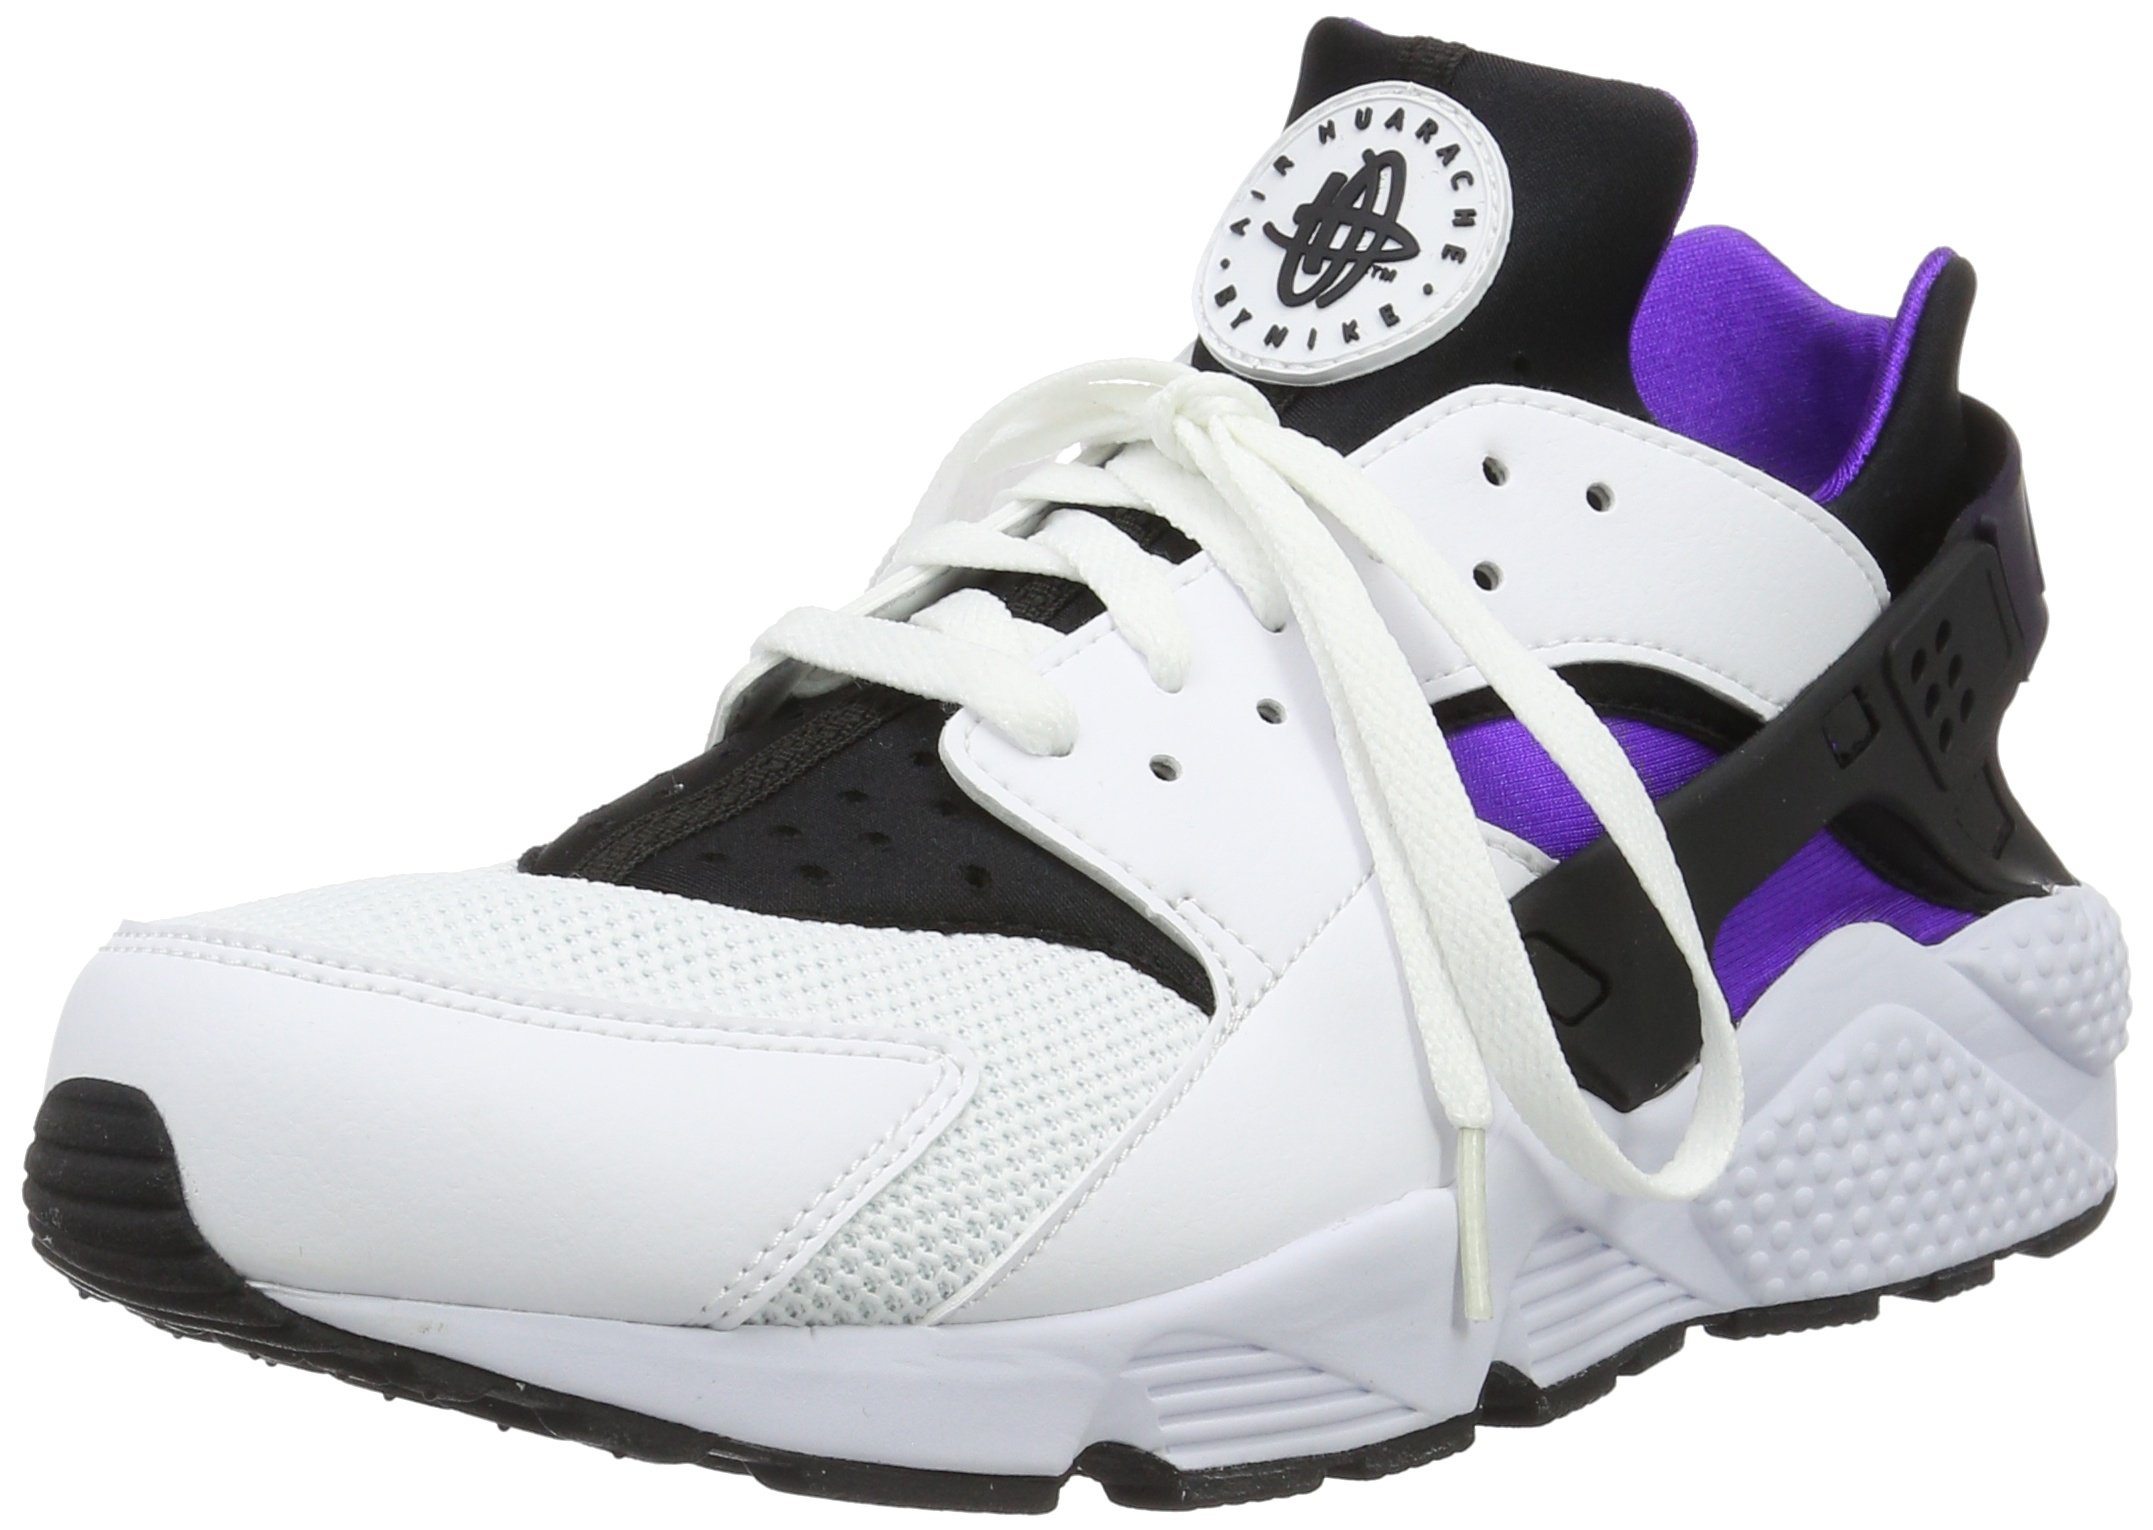 Nike Air Huarache 318429 105 White/Hypr Grp-Black-Purple-Dynsty (11.5)